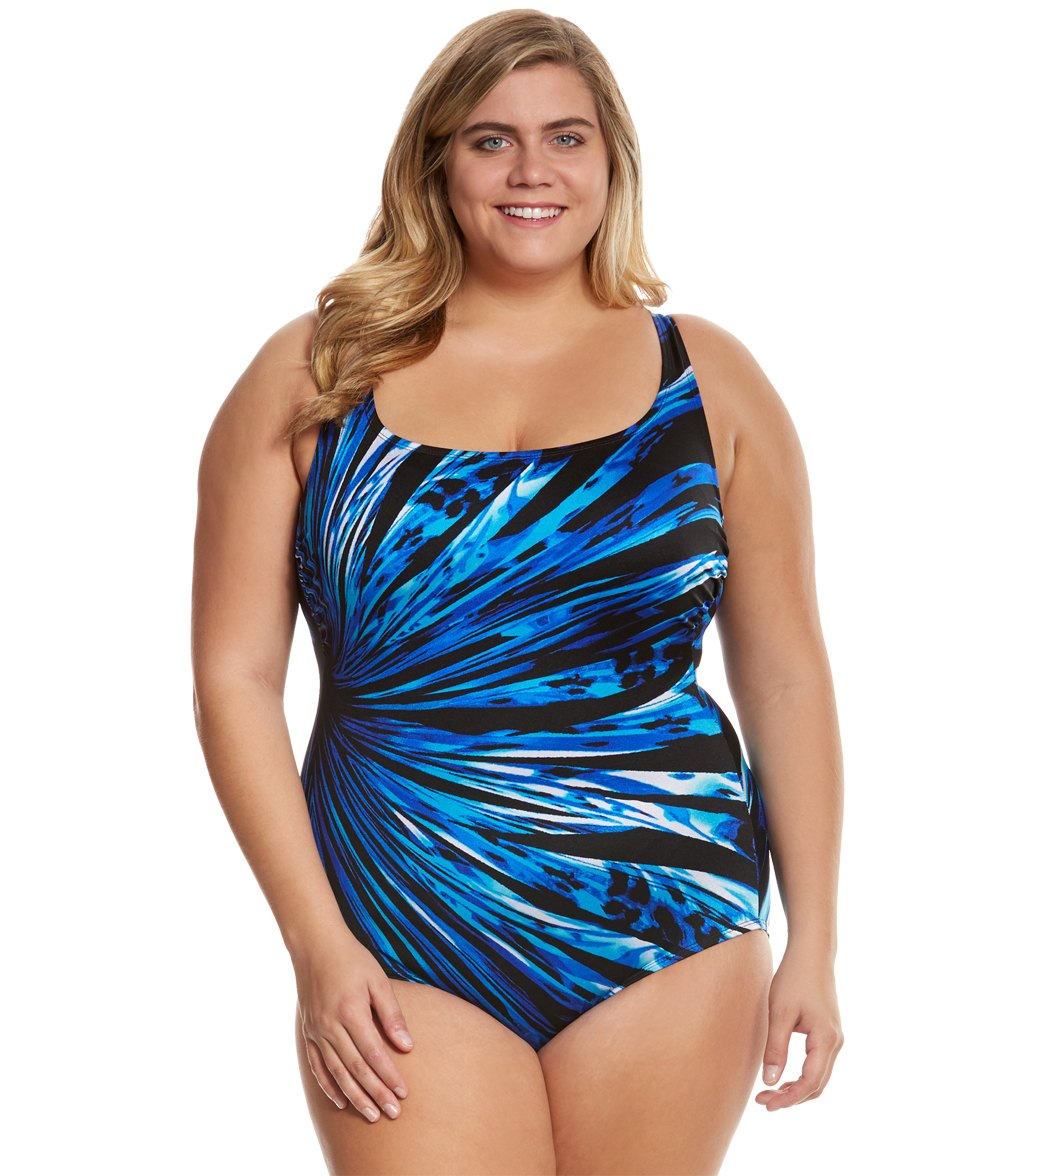 c6378540ab How to Choose Flattering Plus Size Swimwear